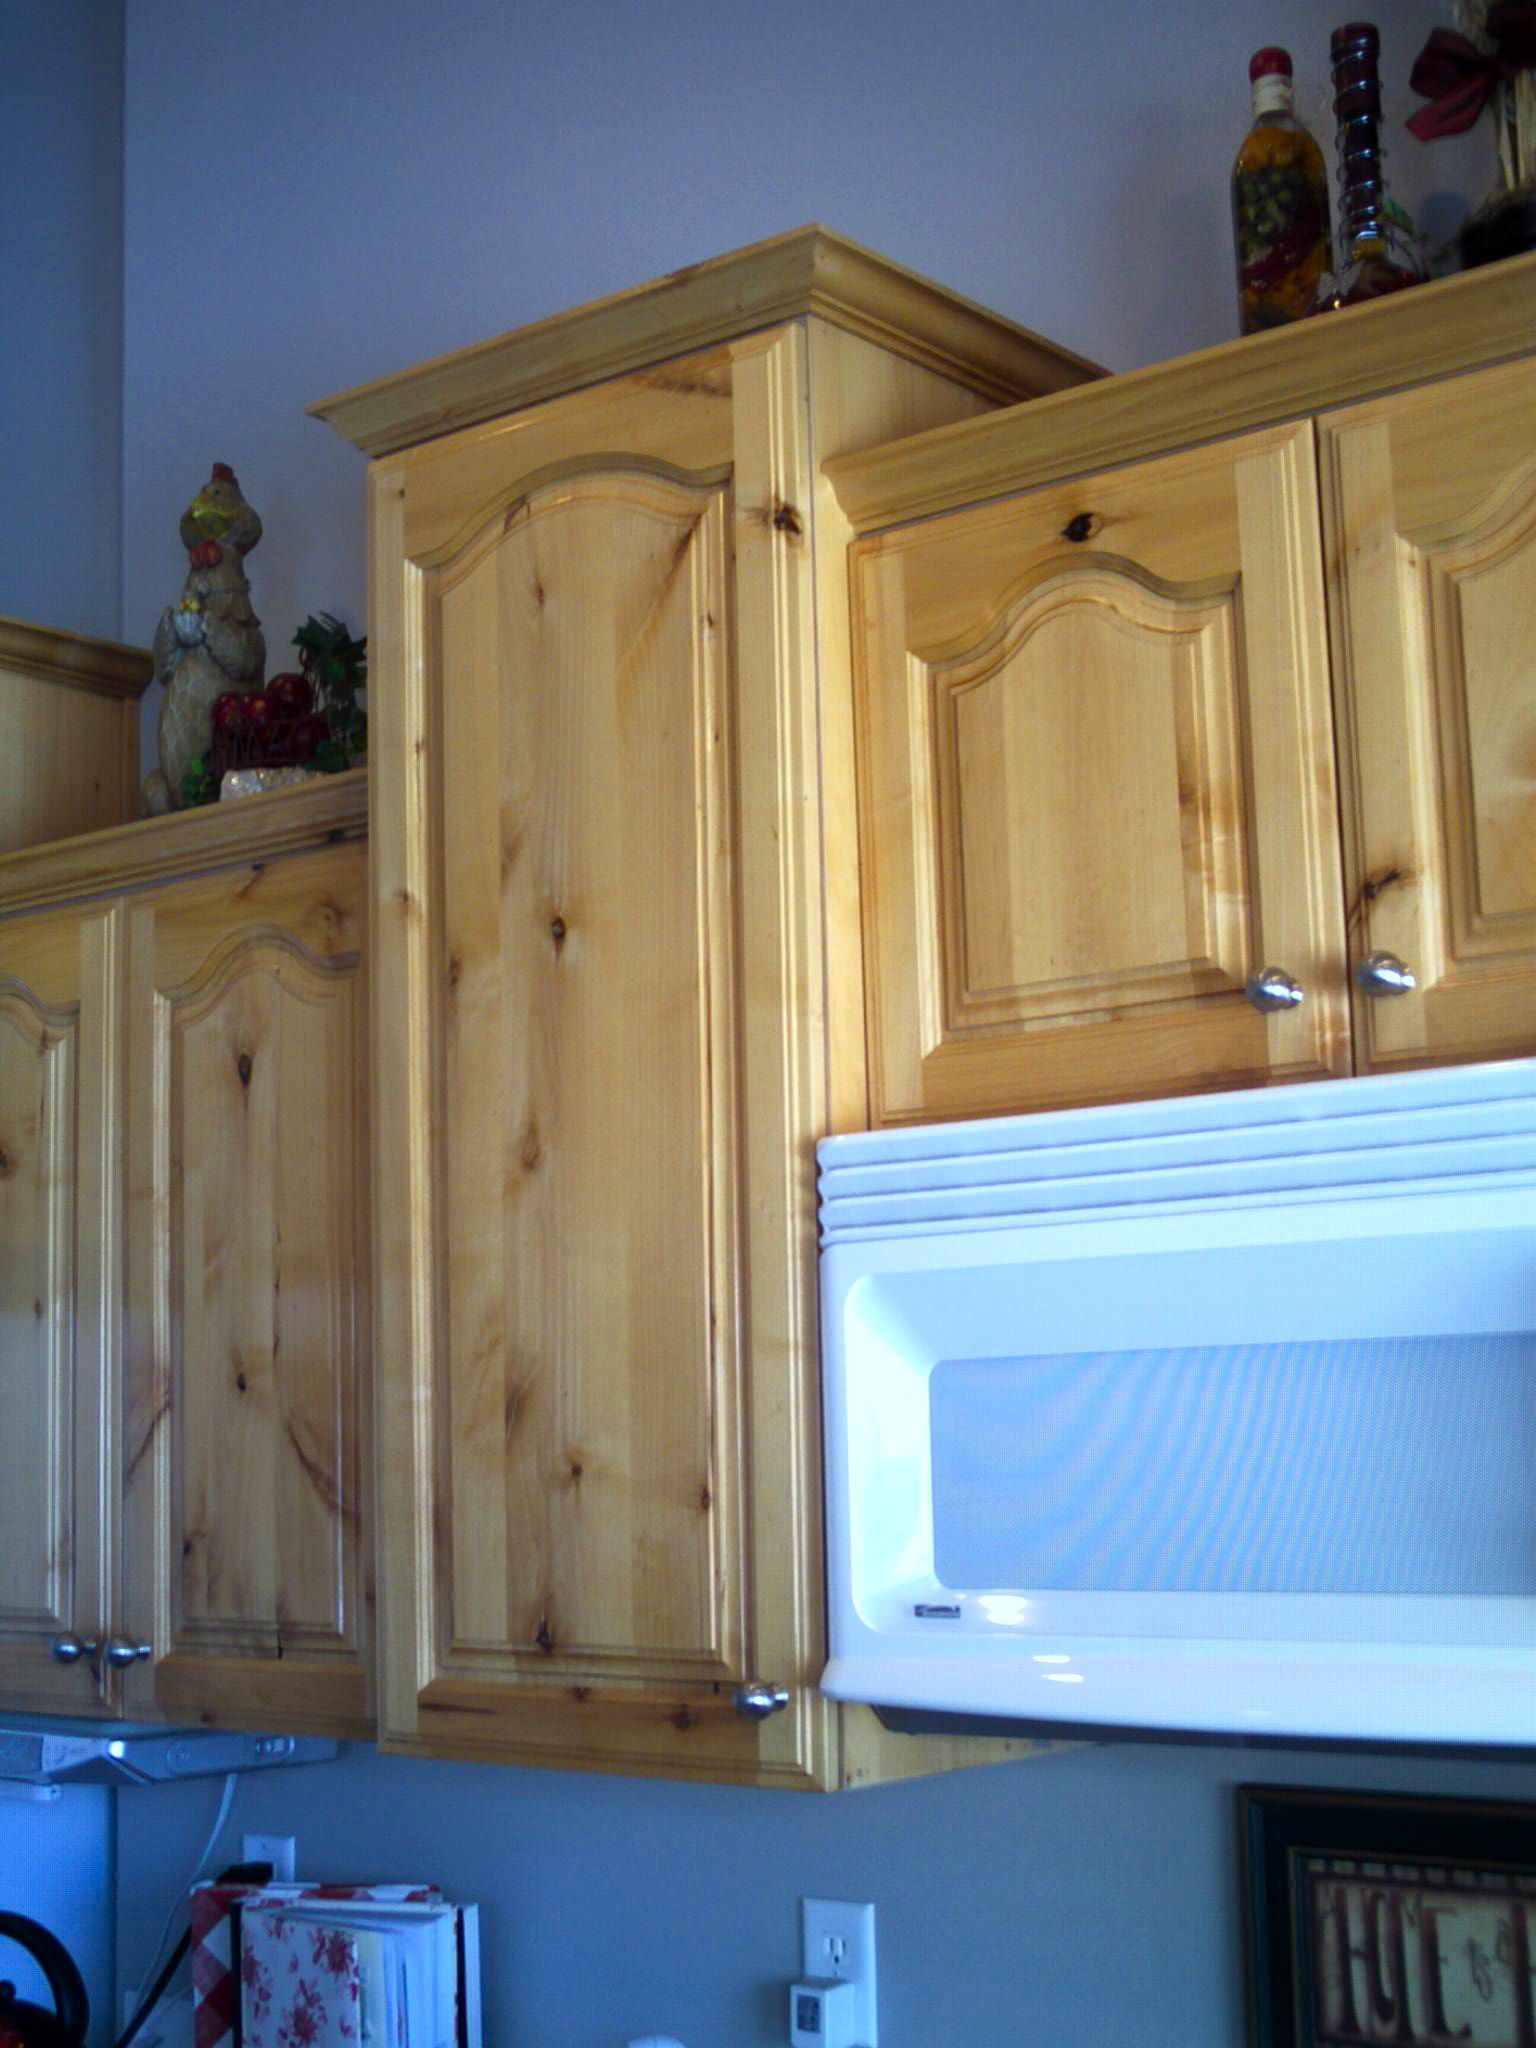 repainting kitchen cabinets ikea remodel cost refinished knotty alderwood